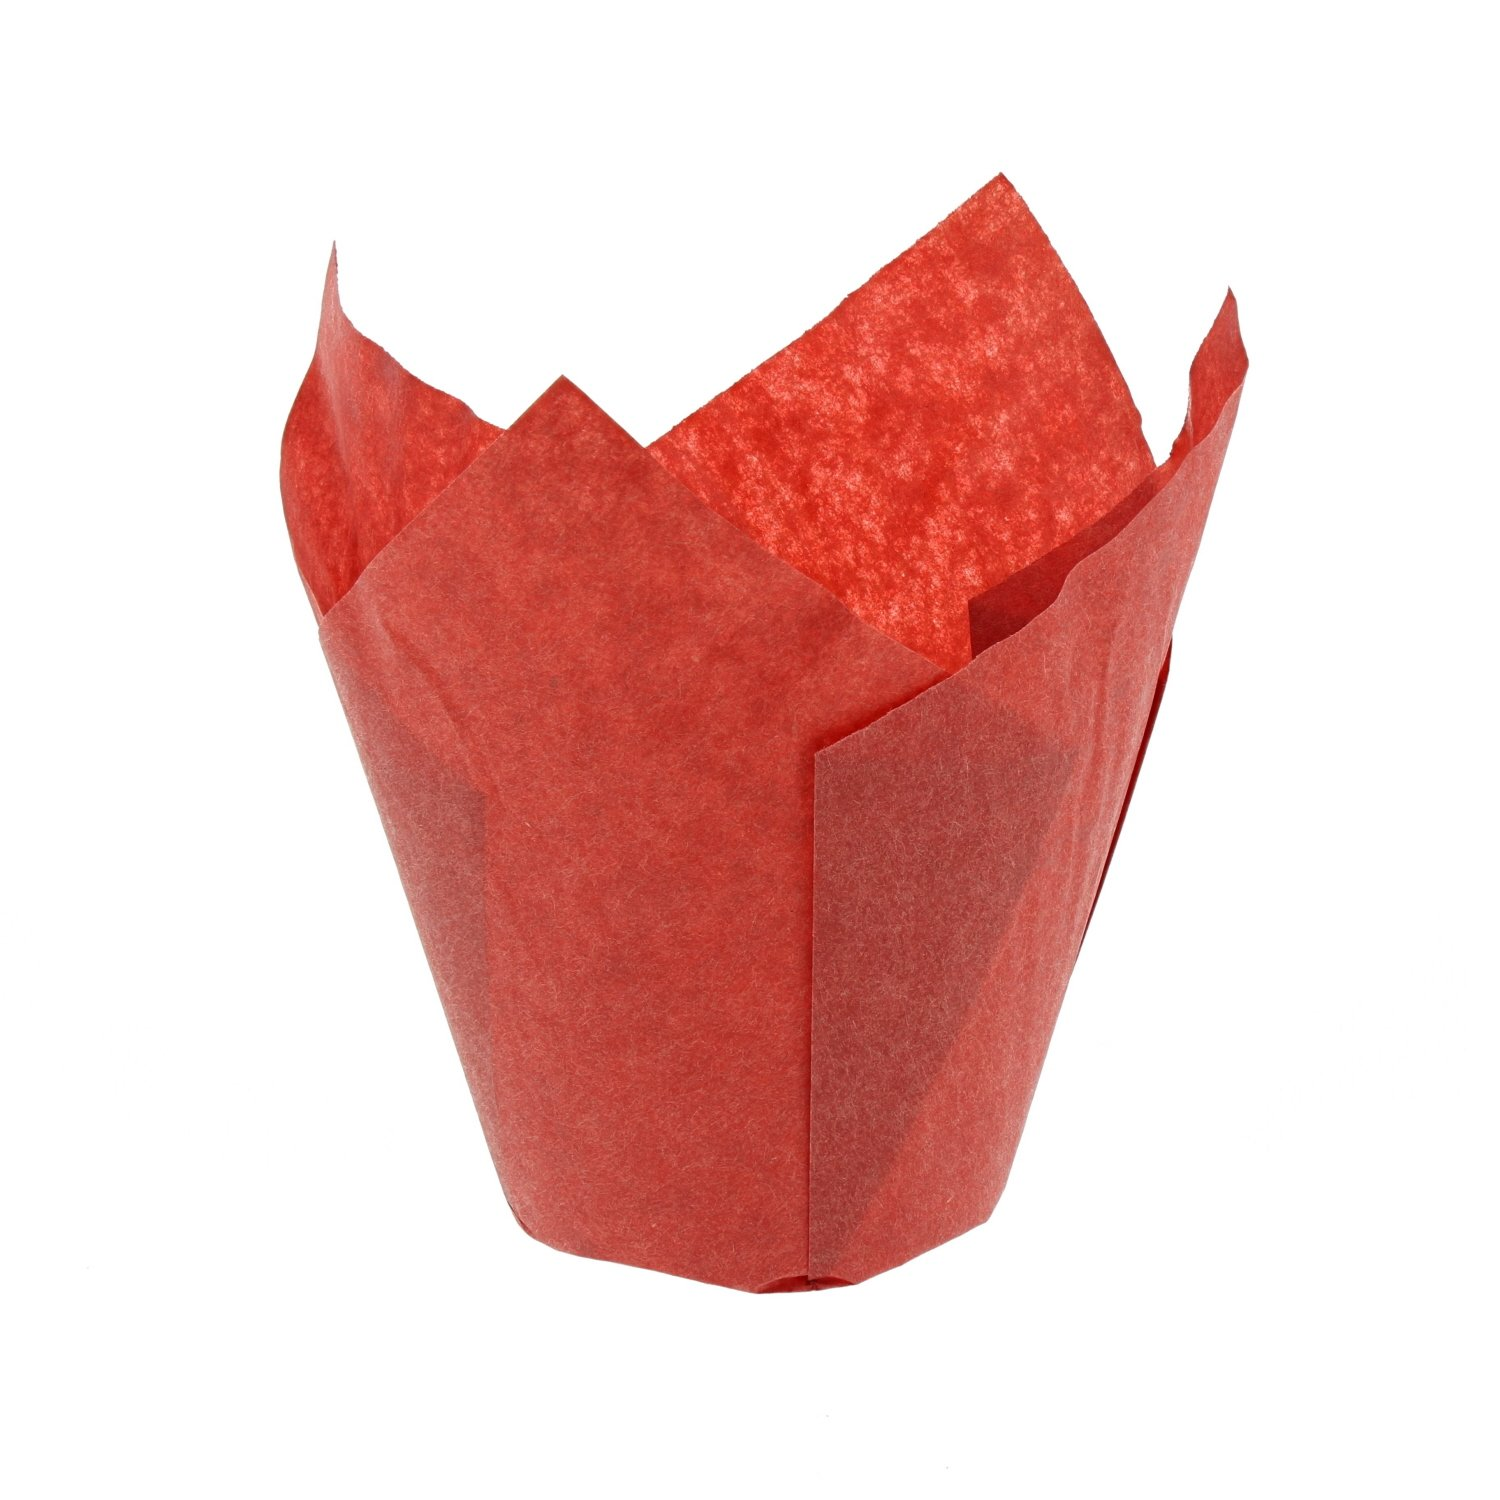 CiboWares Small Red Tulip Style Baking Cups, Case of 2,000